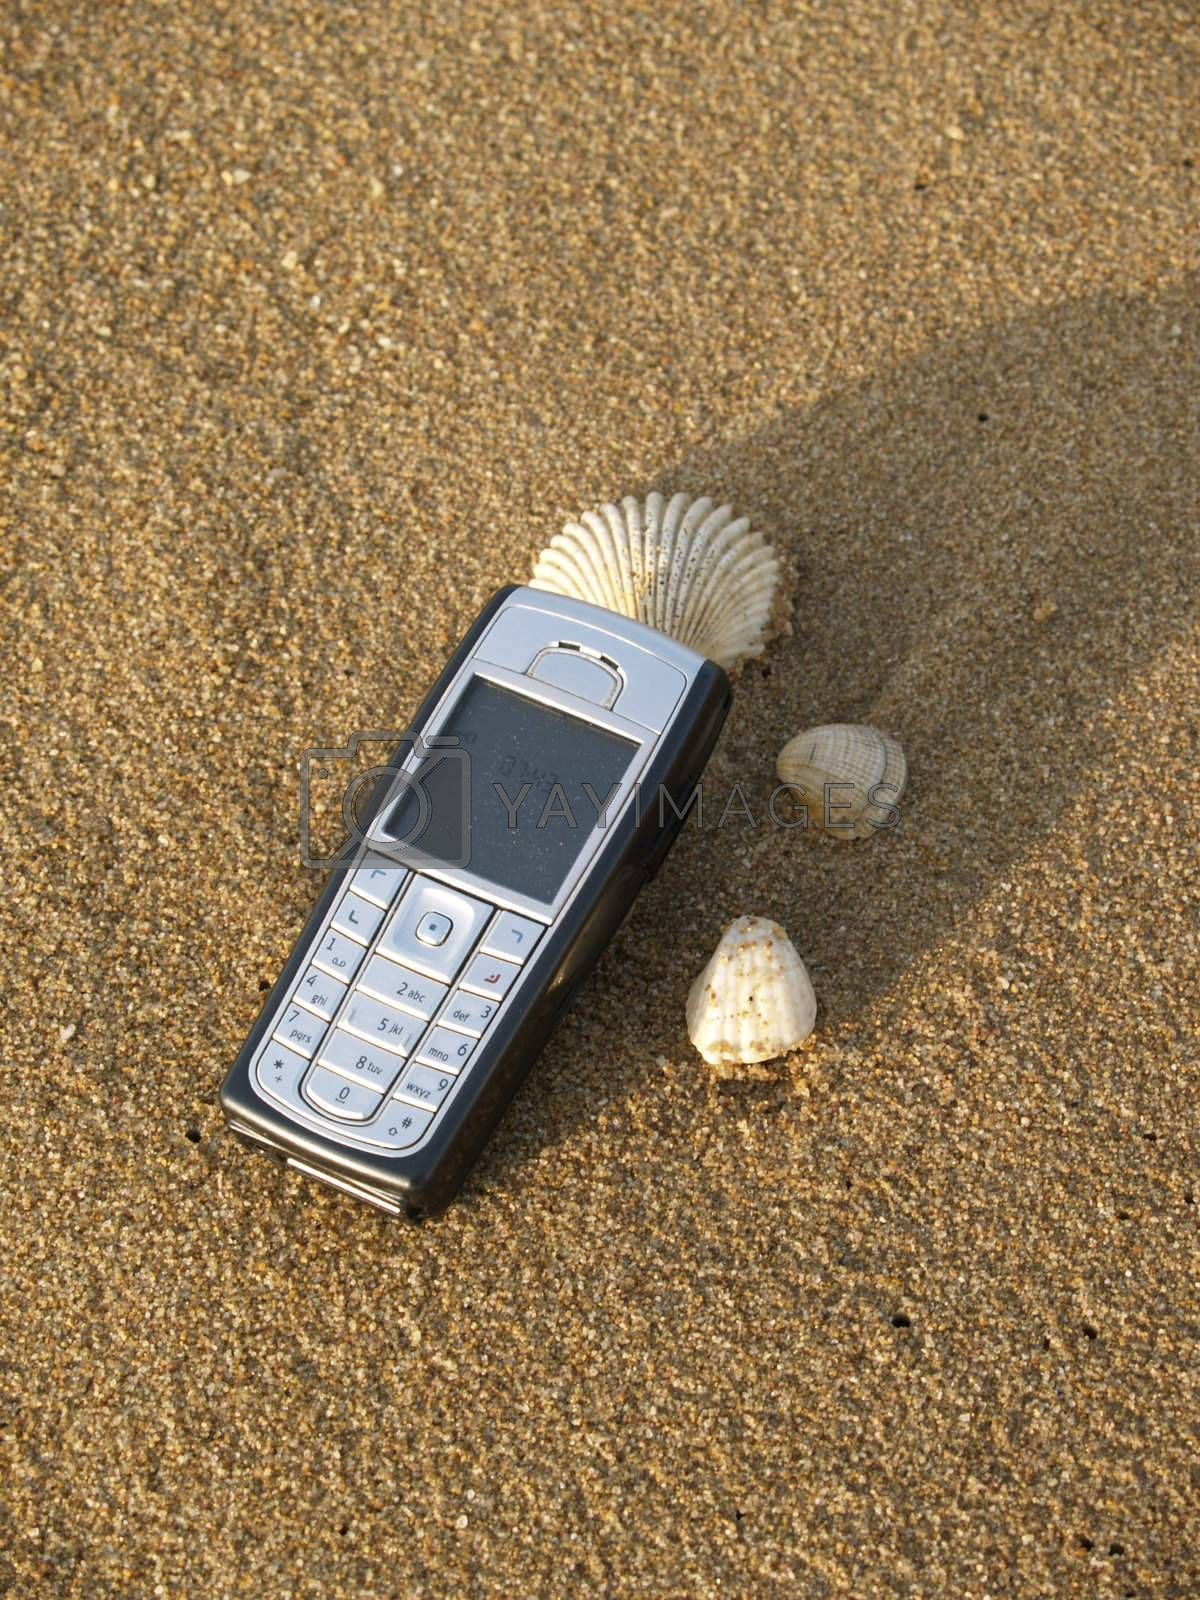 Mobile phone on the beach by epixx